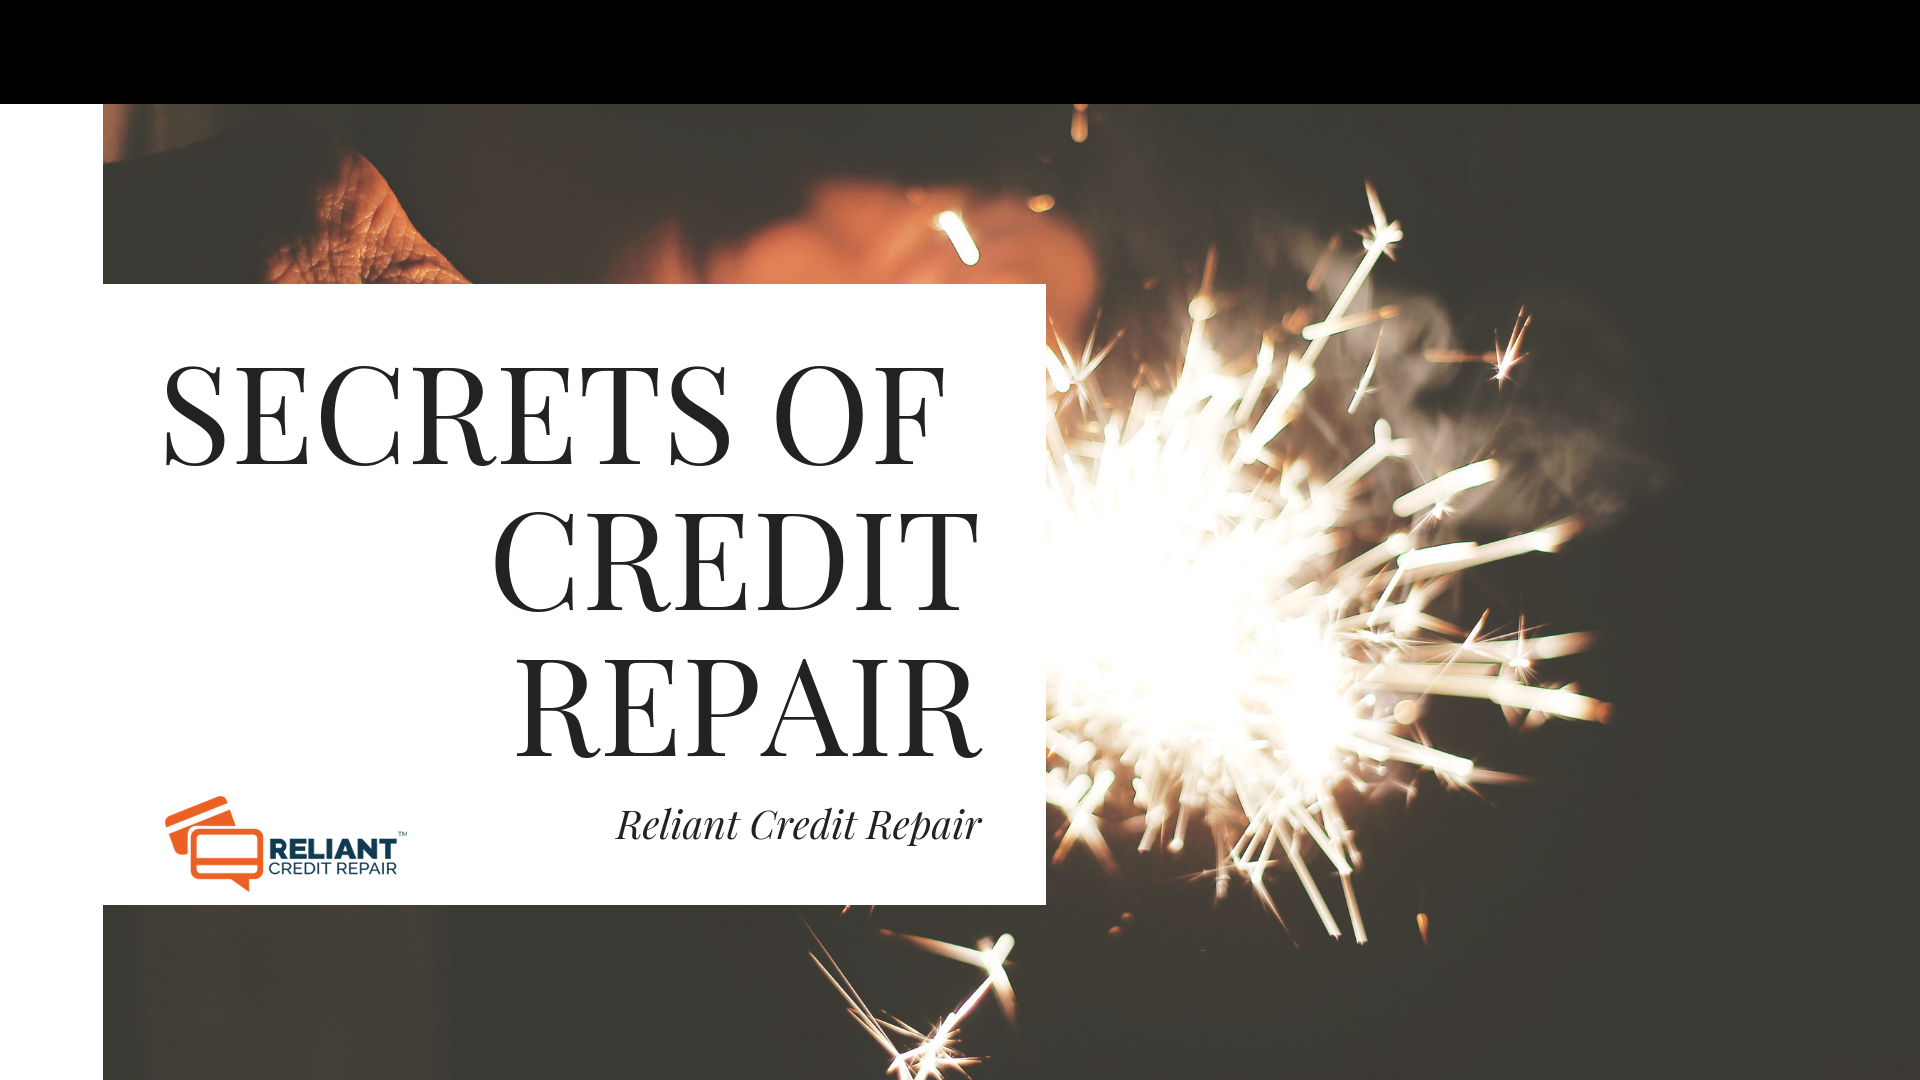 Secrets OF Credit Repair